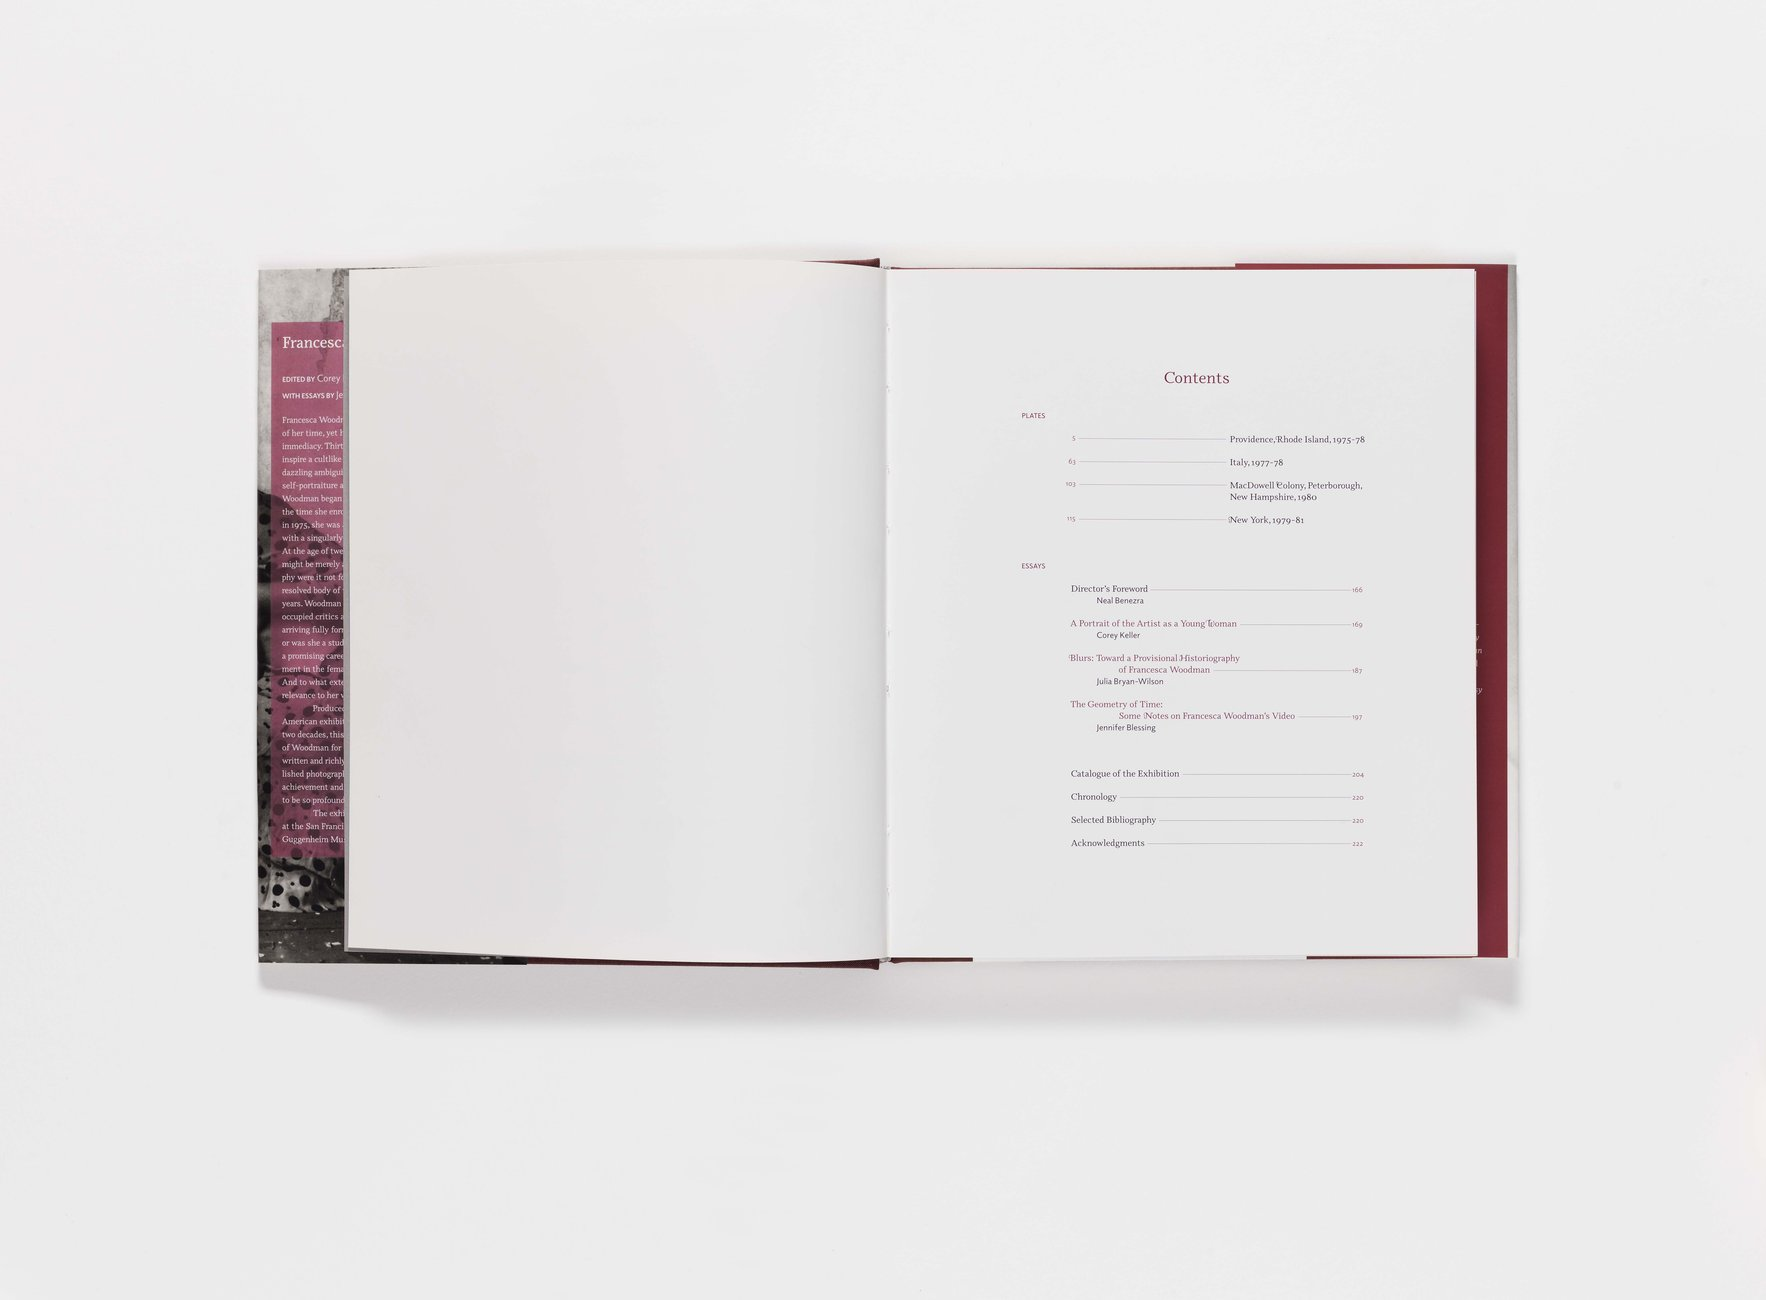 Francesca Woodman publication table of contents